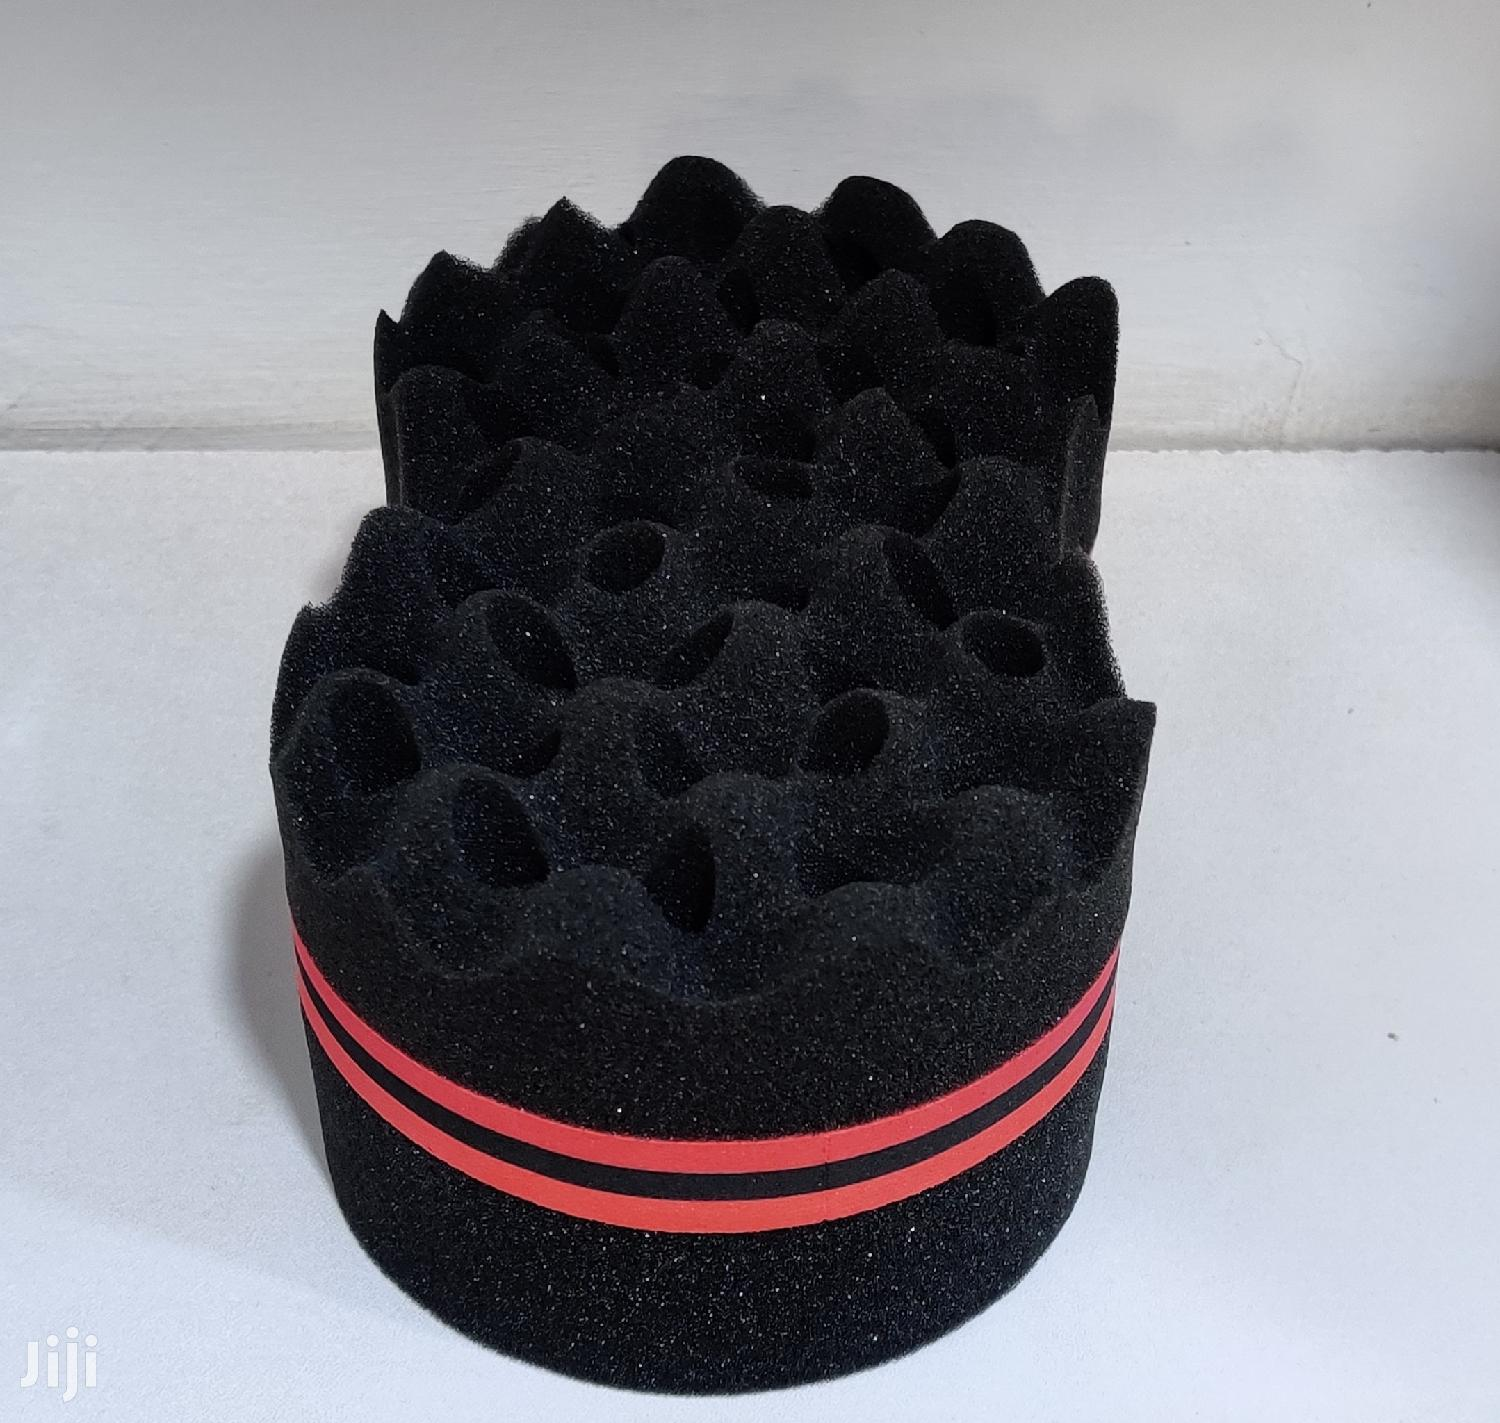 Sponge Roller, Twisting Sponge For Afro Curls And Dreadlocks | Tools & Accessories for sale in Kampala, Central Region, Uganda